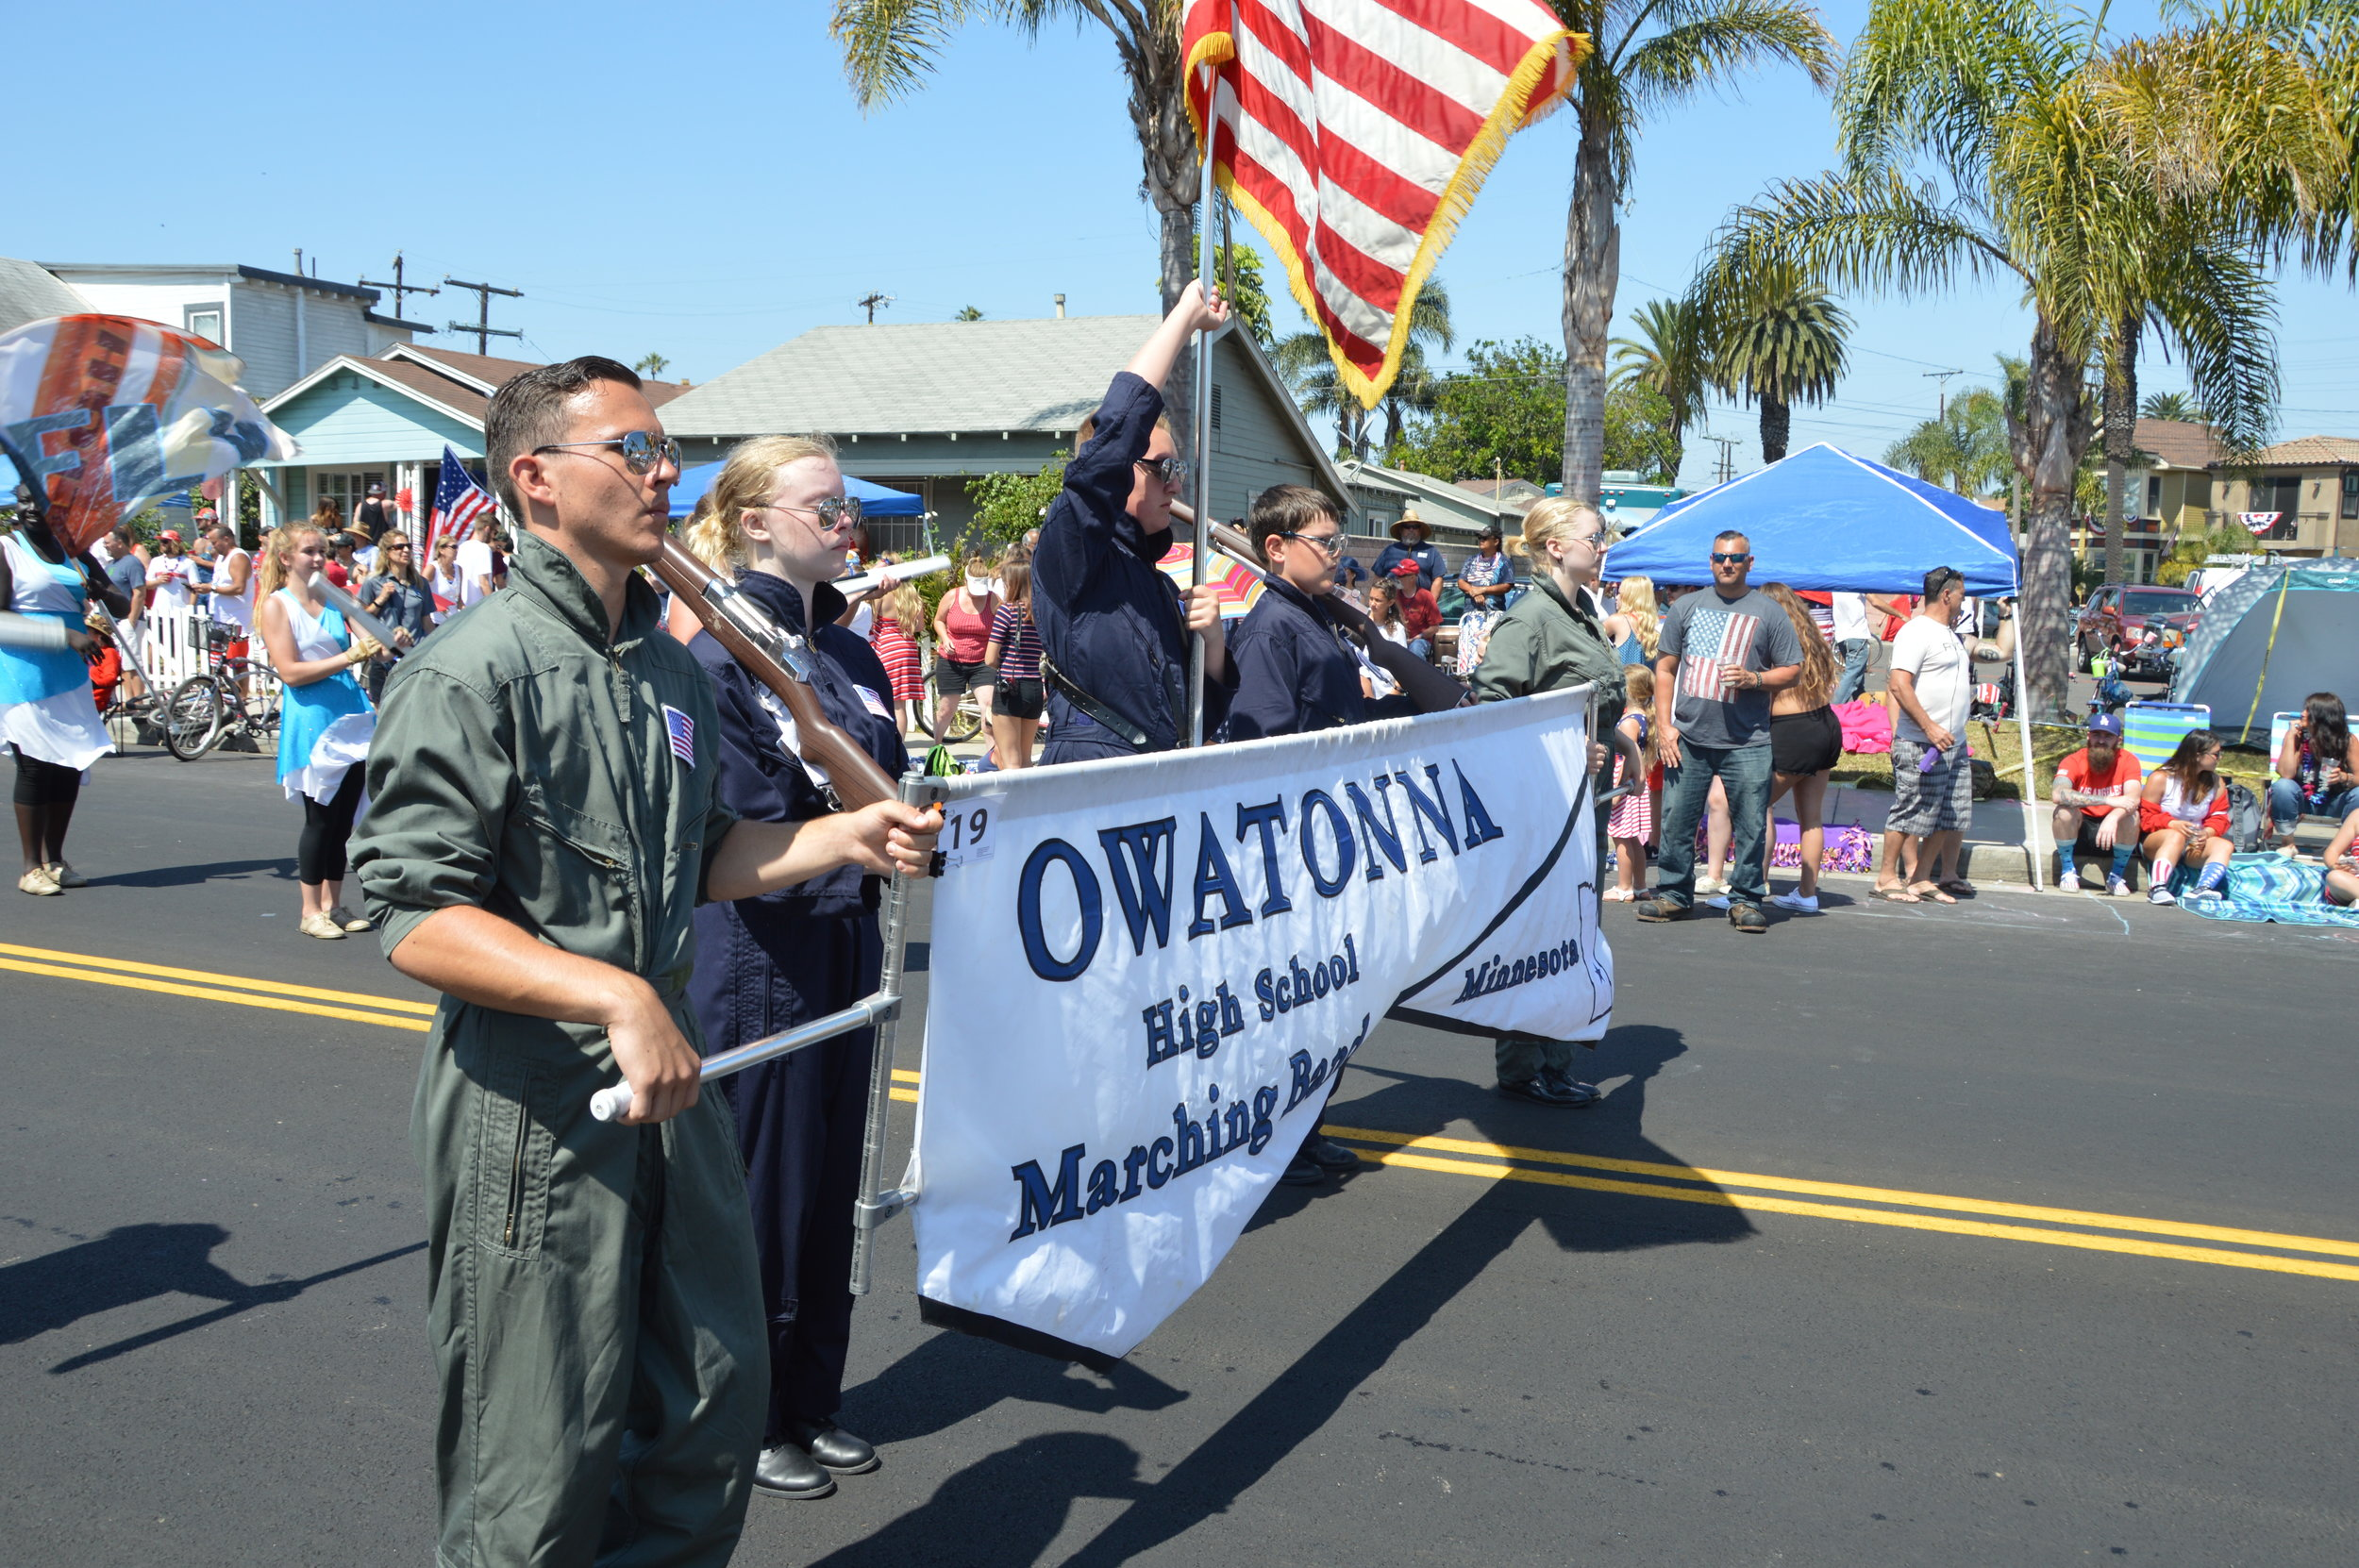 The Owatonna Marching Band at the 4th of July Parade in Long Beach, California